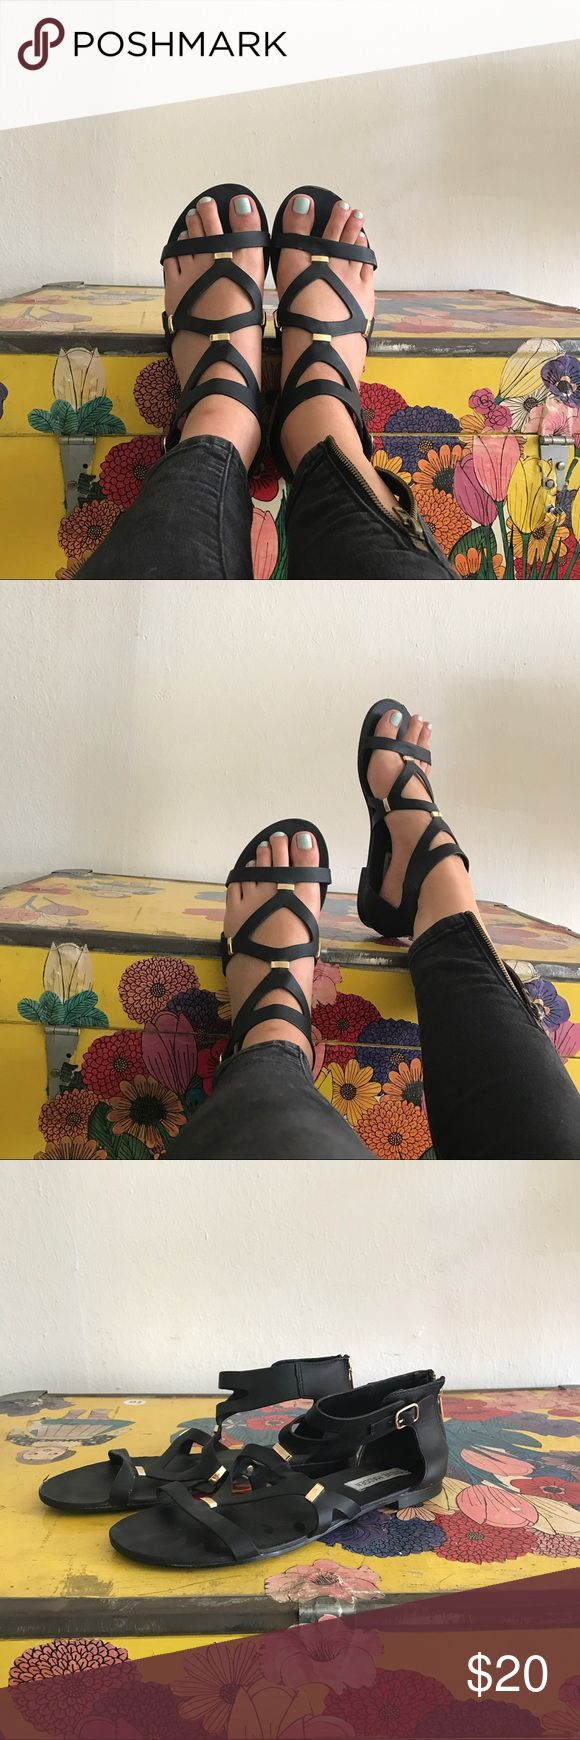 Steve Madden comma flat gladiator sandals Worn only two times, perfect simple black gladiator sandals by Steve Madden, so cute!! Goes with quite literally everything Steve Madden Shoes Sandals